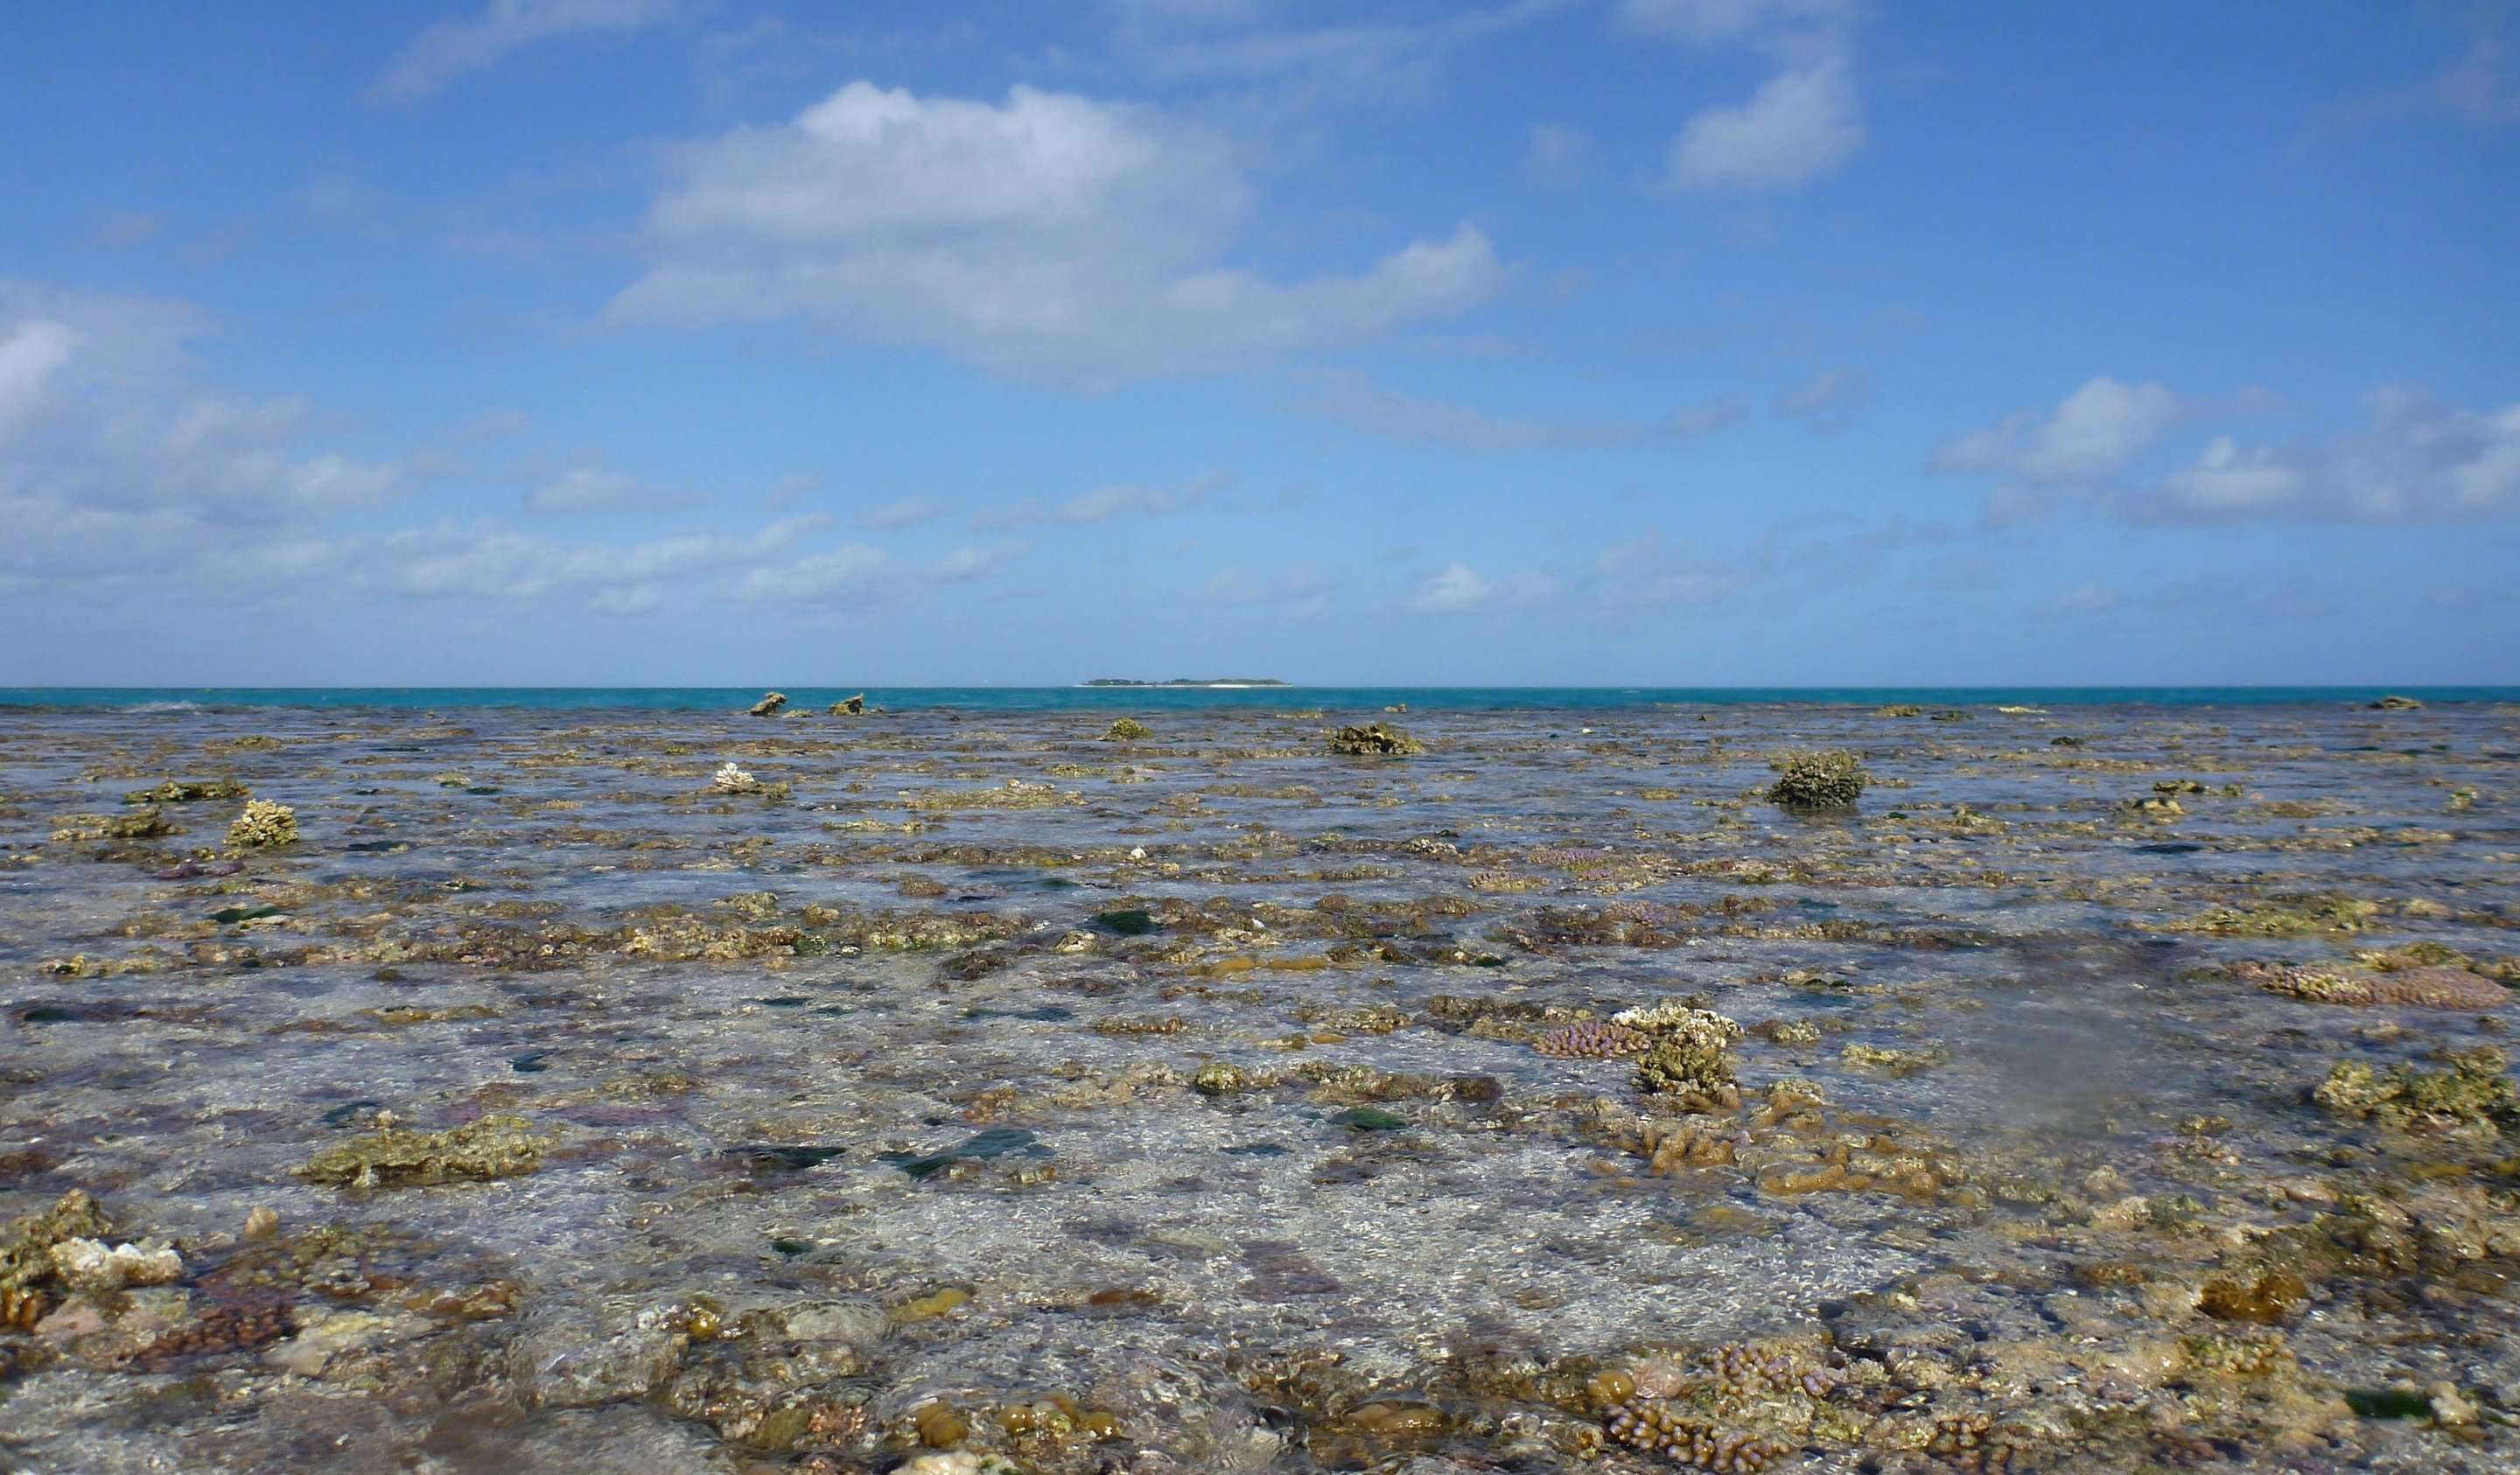 coral reef experiment shows acidification from carbon dioxide slows